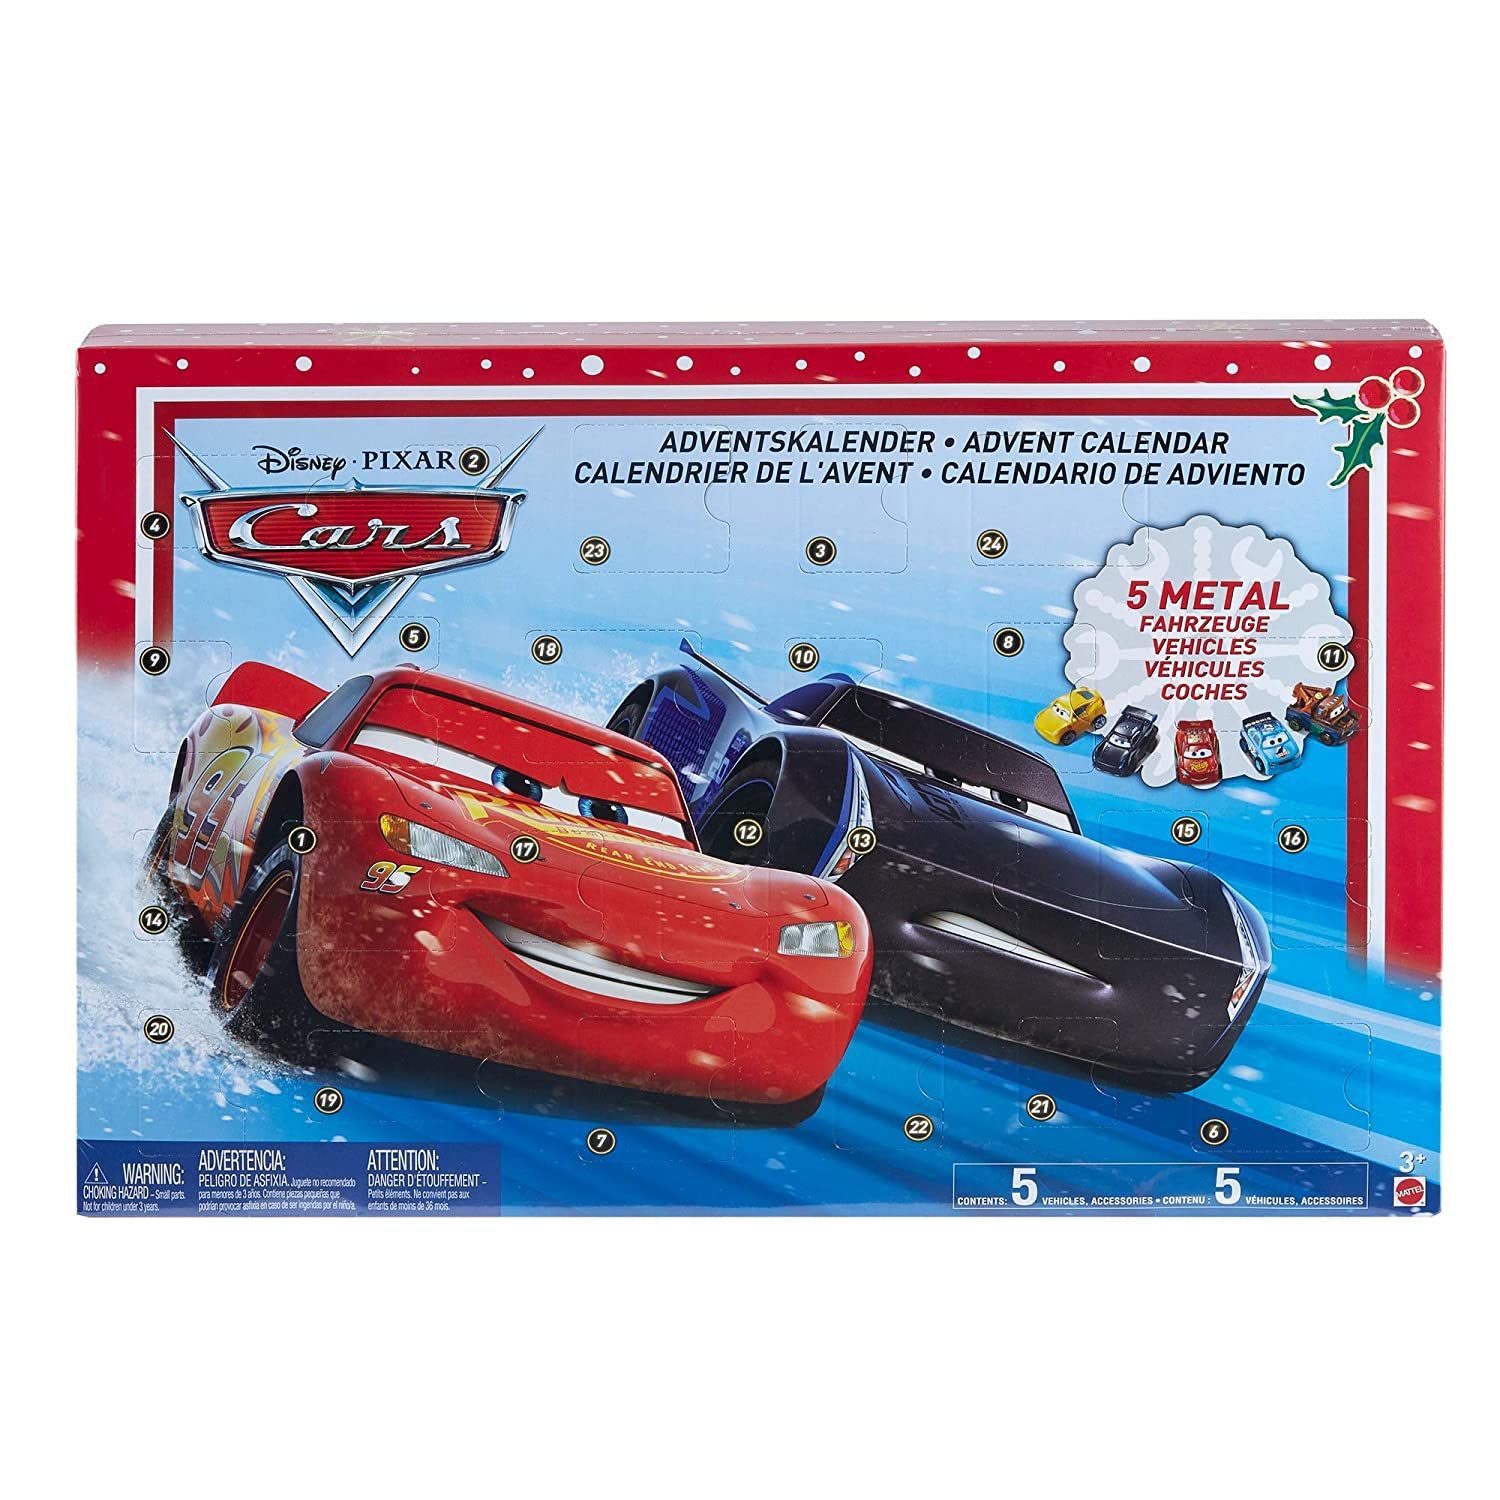 Disney Pixar Cars GBV45 Advent Calendar, Multi-Colour Mattel